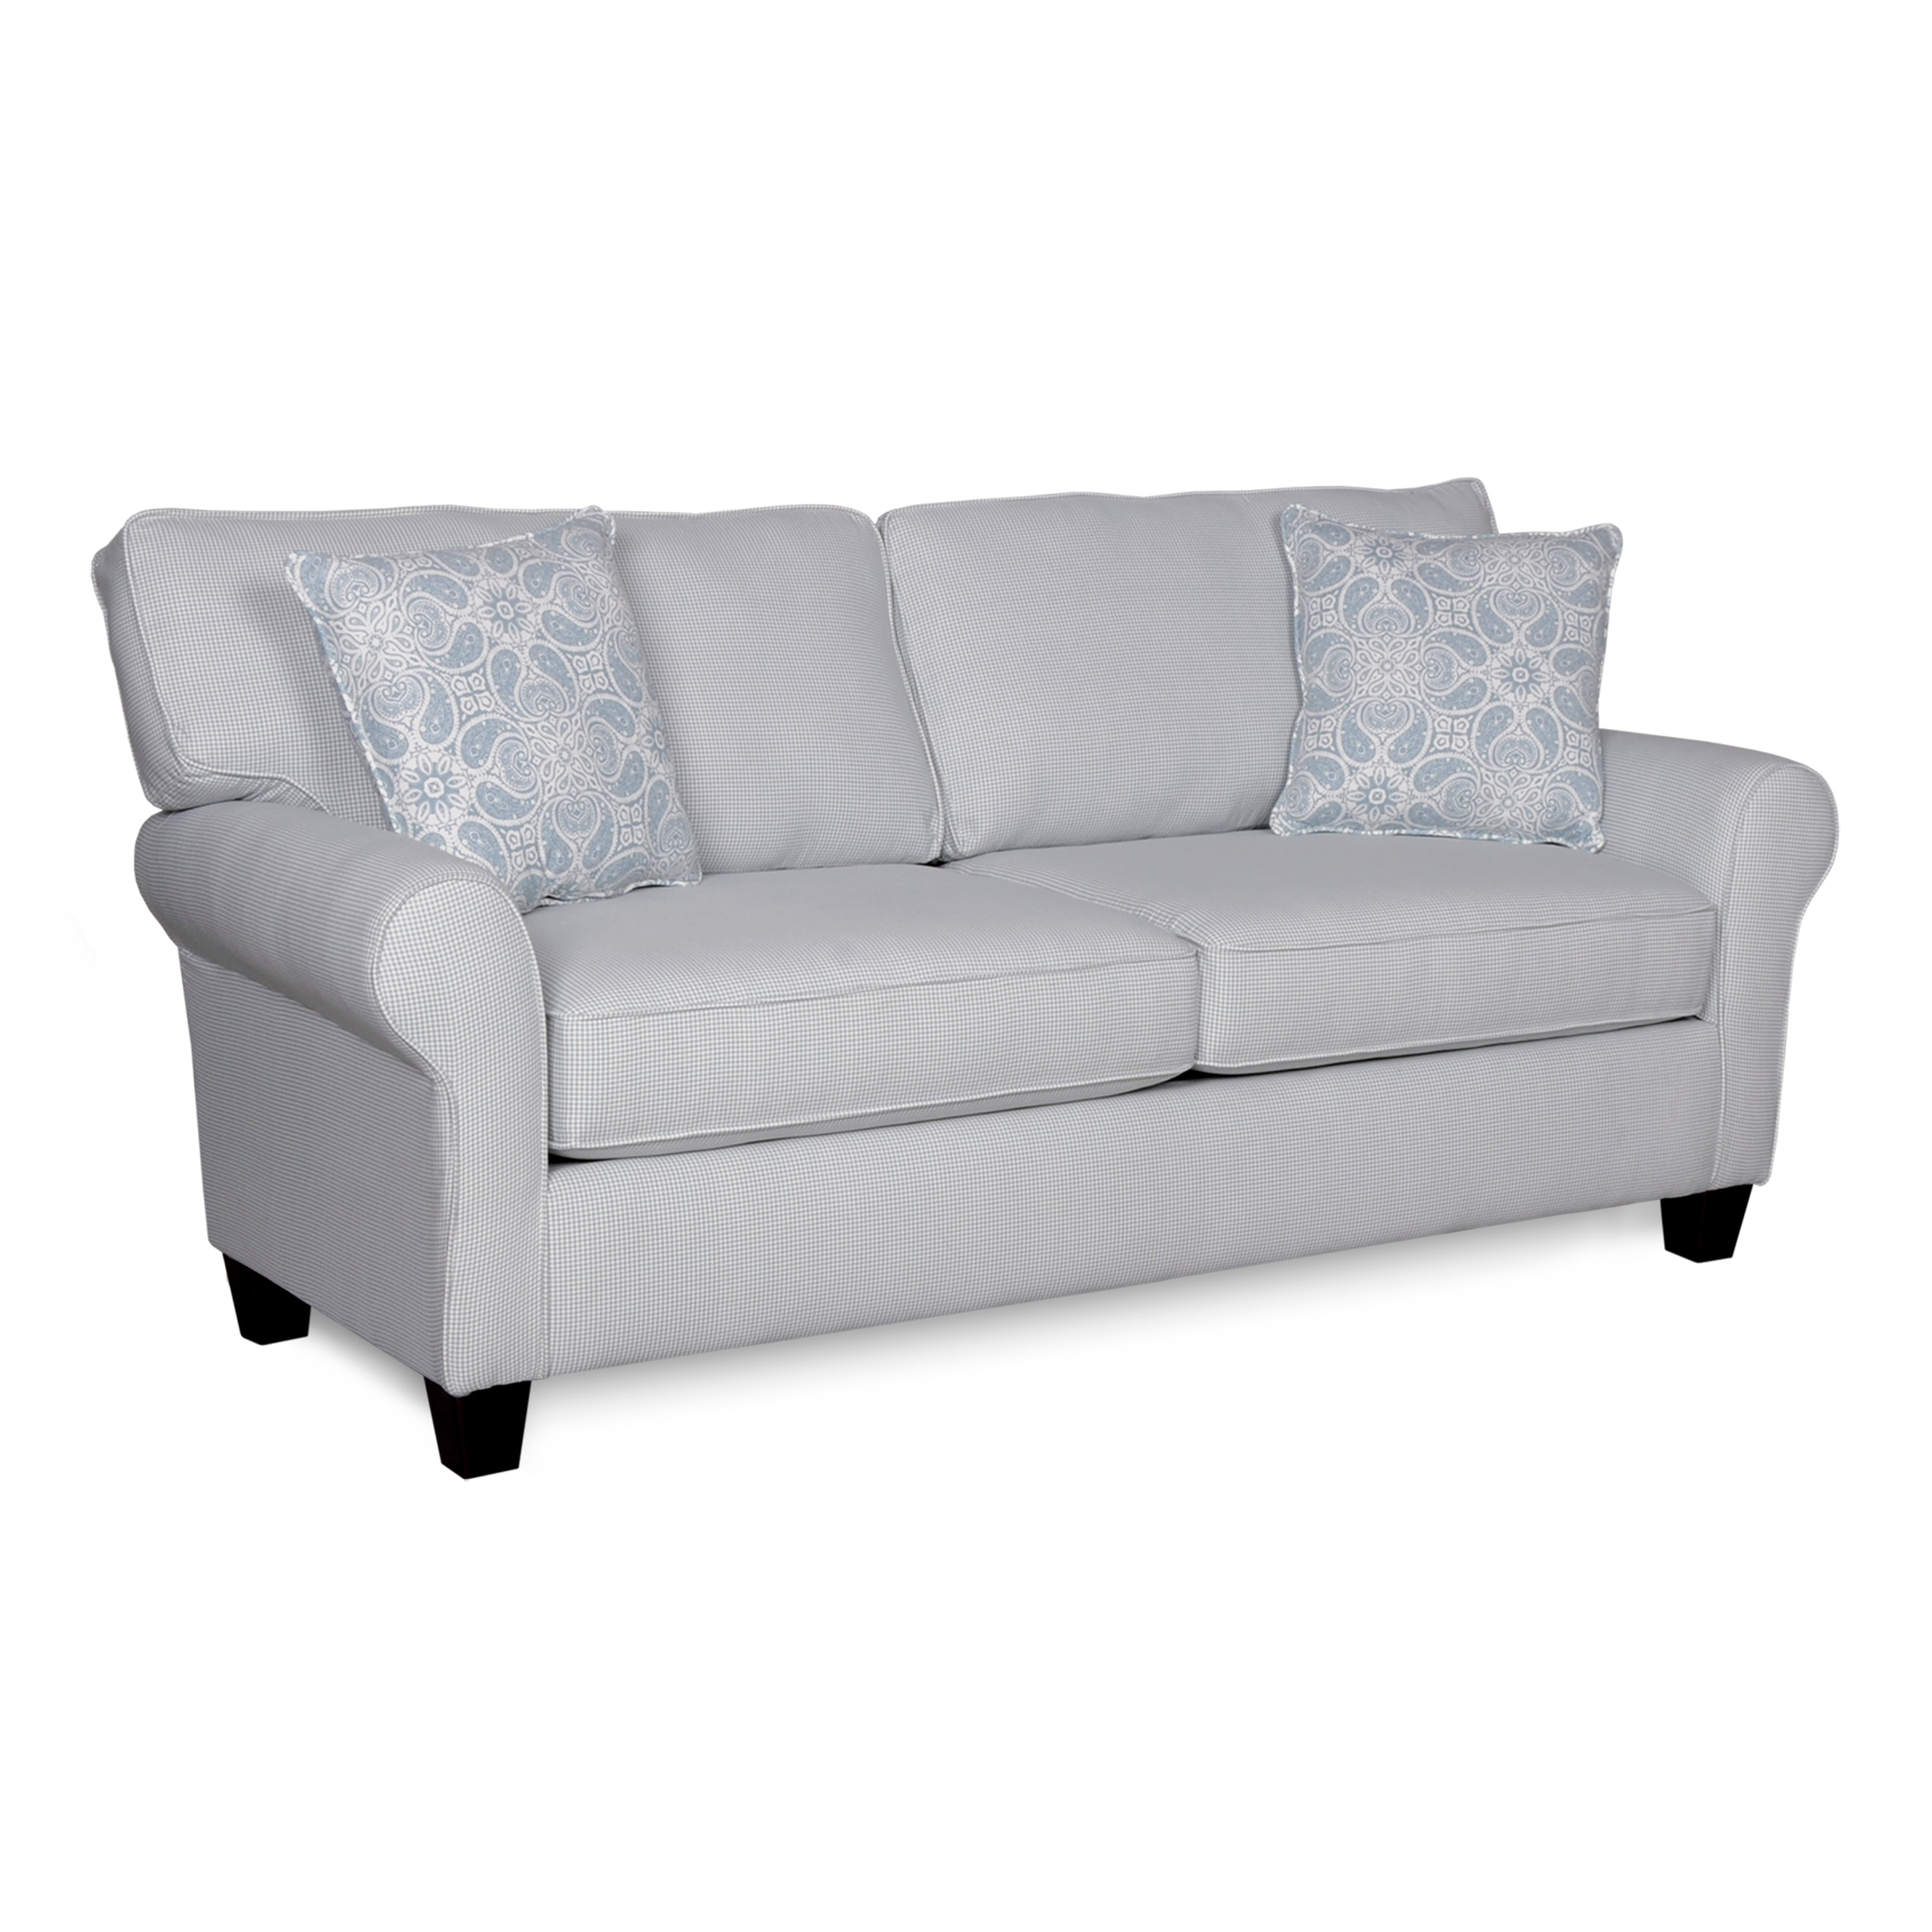 Beau Shop Sofab Bella Lake Gingham Sofa With Two Accent Pillows   Free Shipping  Today   Overstock.com   10473796